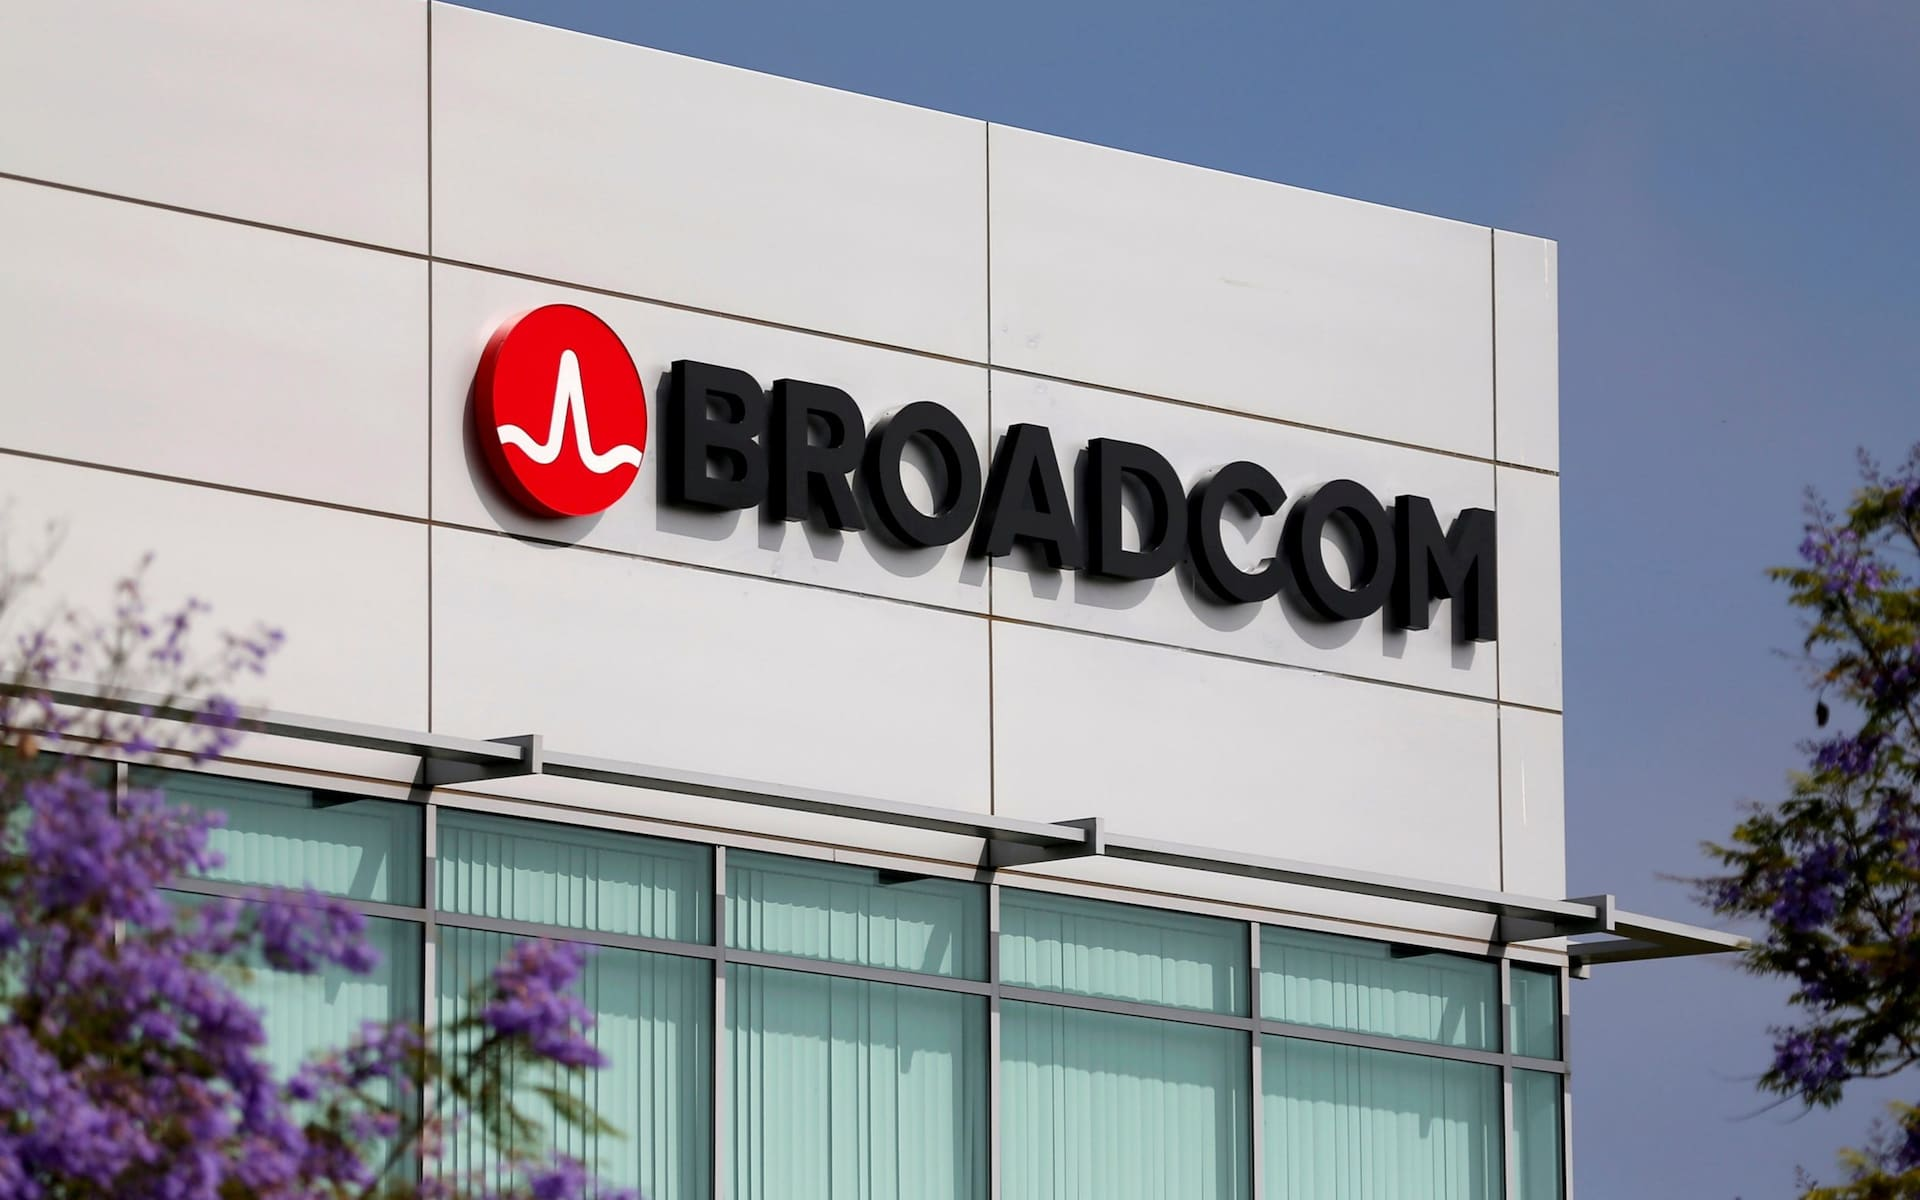 Biggest tech takeover in history: Broadcom makes $130bn offer for Qualcomm